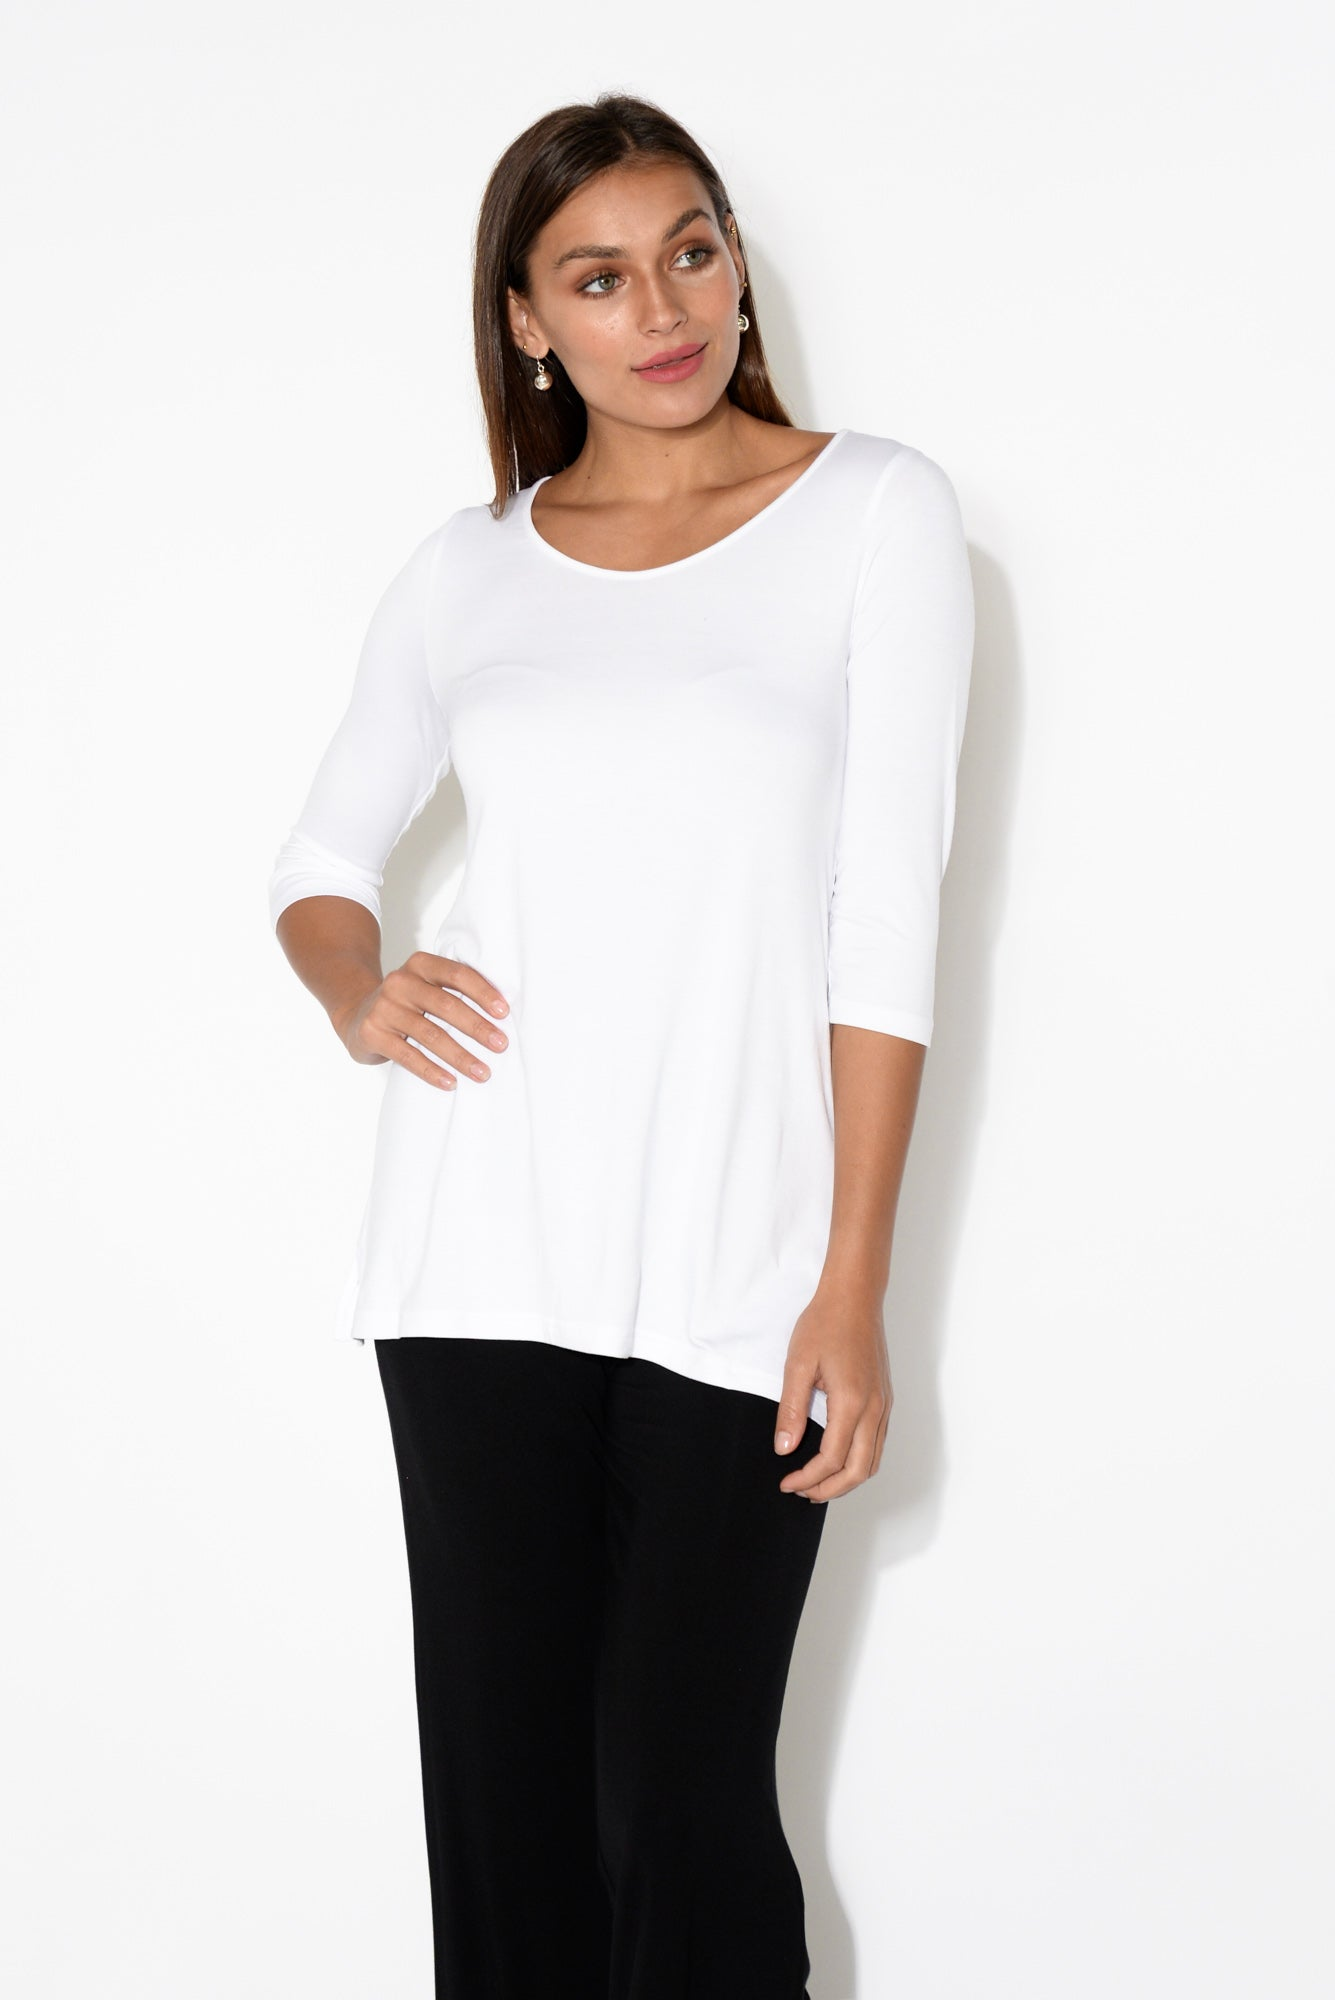 Tropez White Bamboo Top